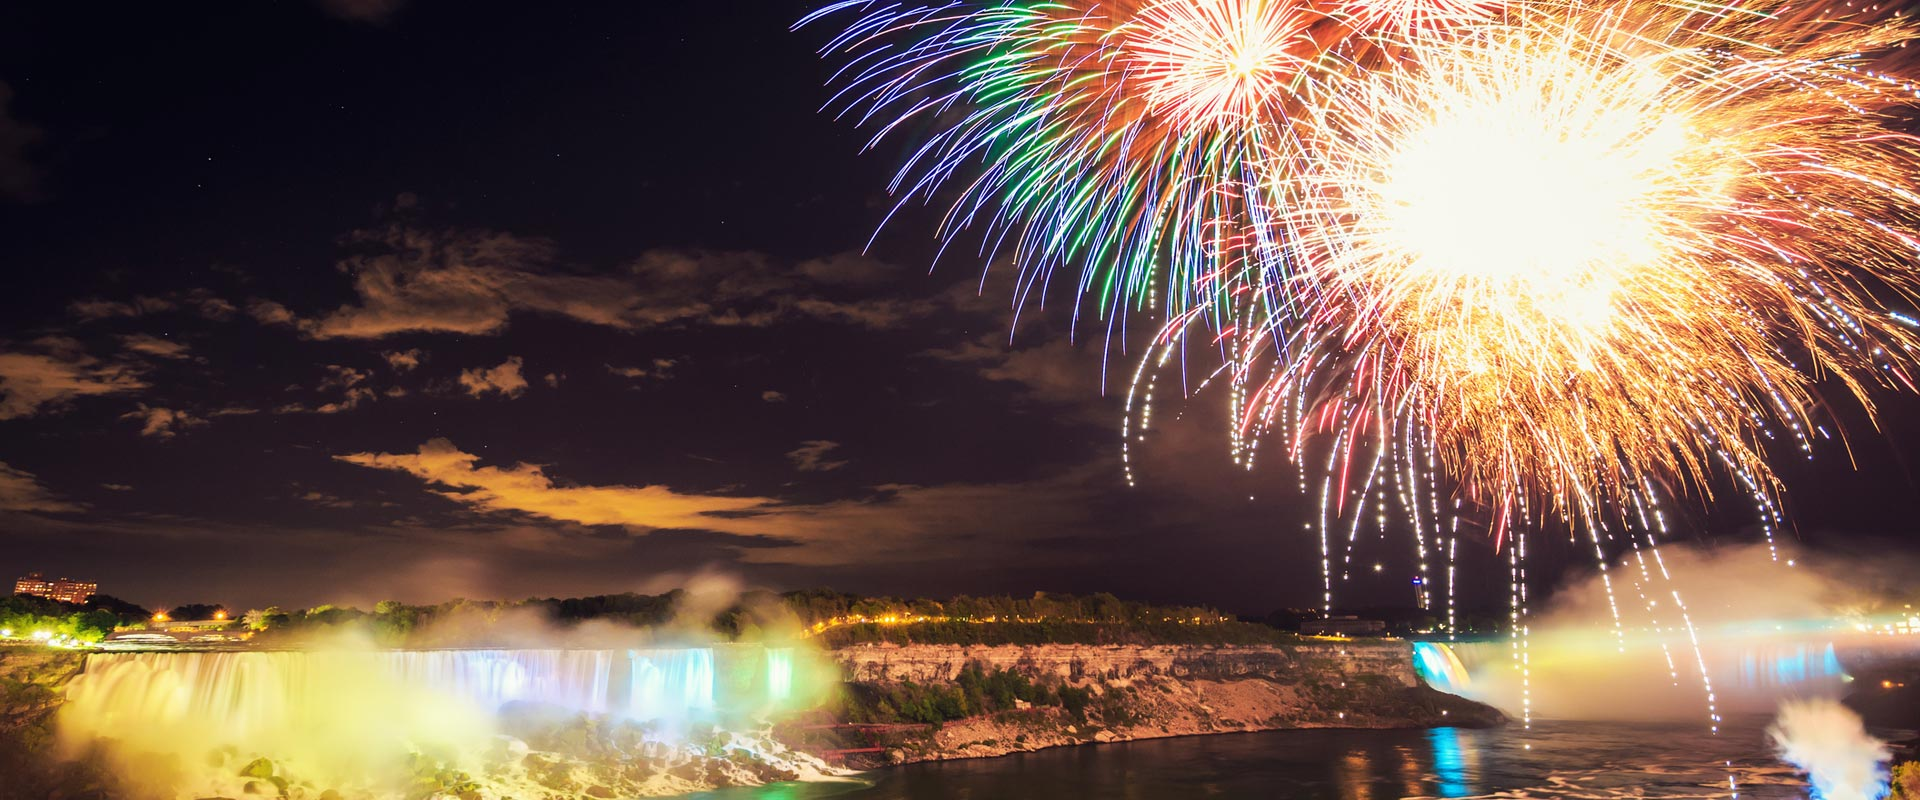 See Summer Fireworks with Niagara Falls Evening Tour from Toronto